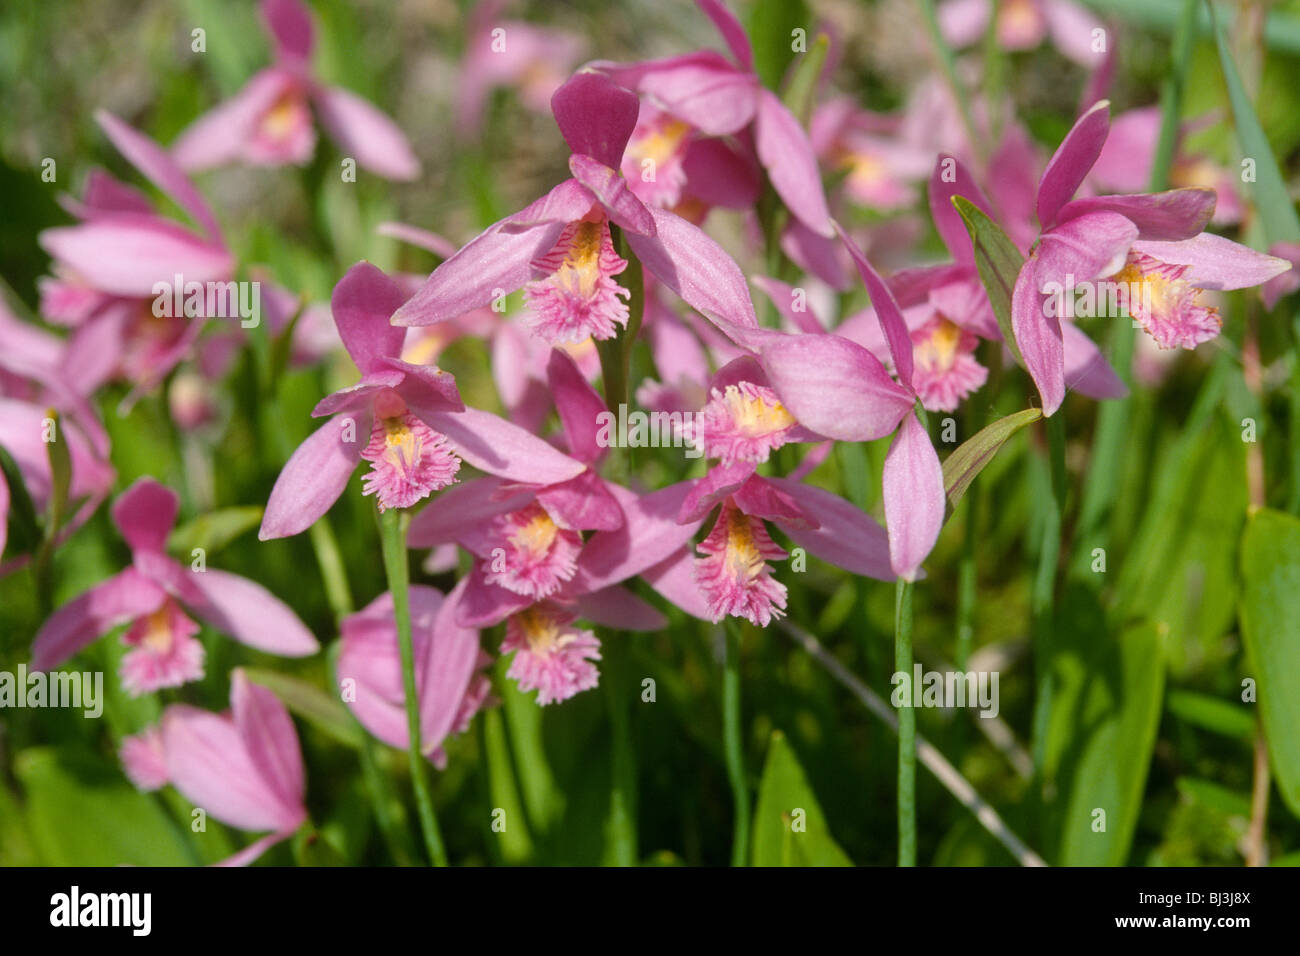 Rose Pogonia Orchideen (Pogonia Ophioglossoides) Stockfoto